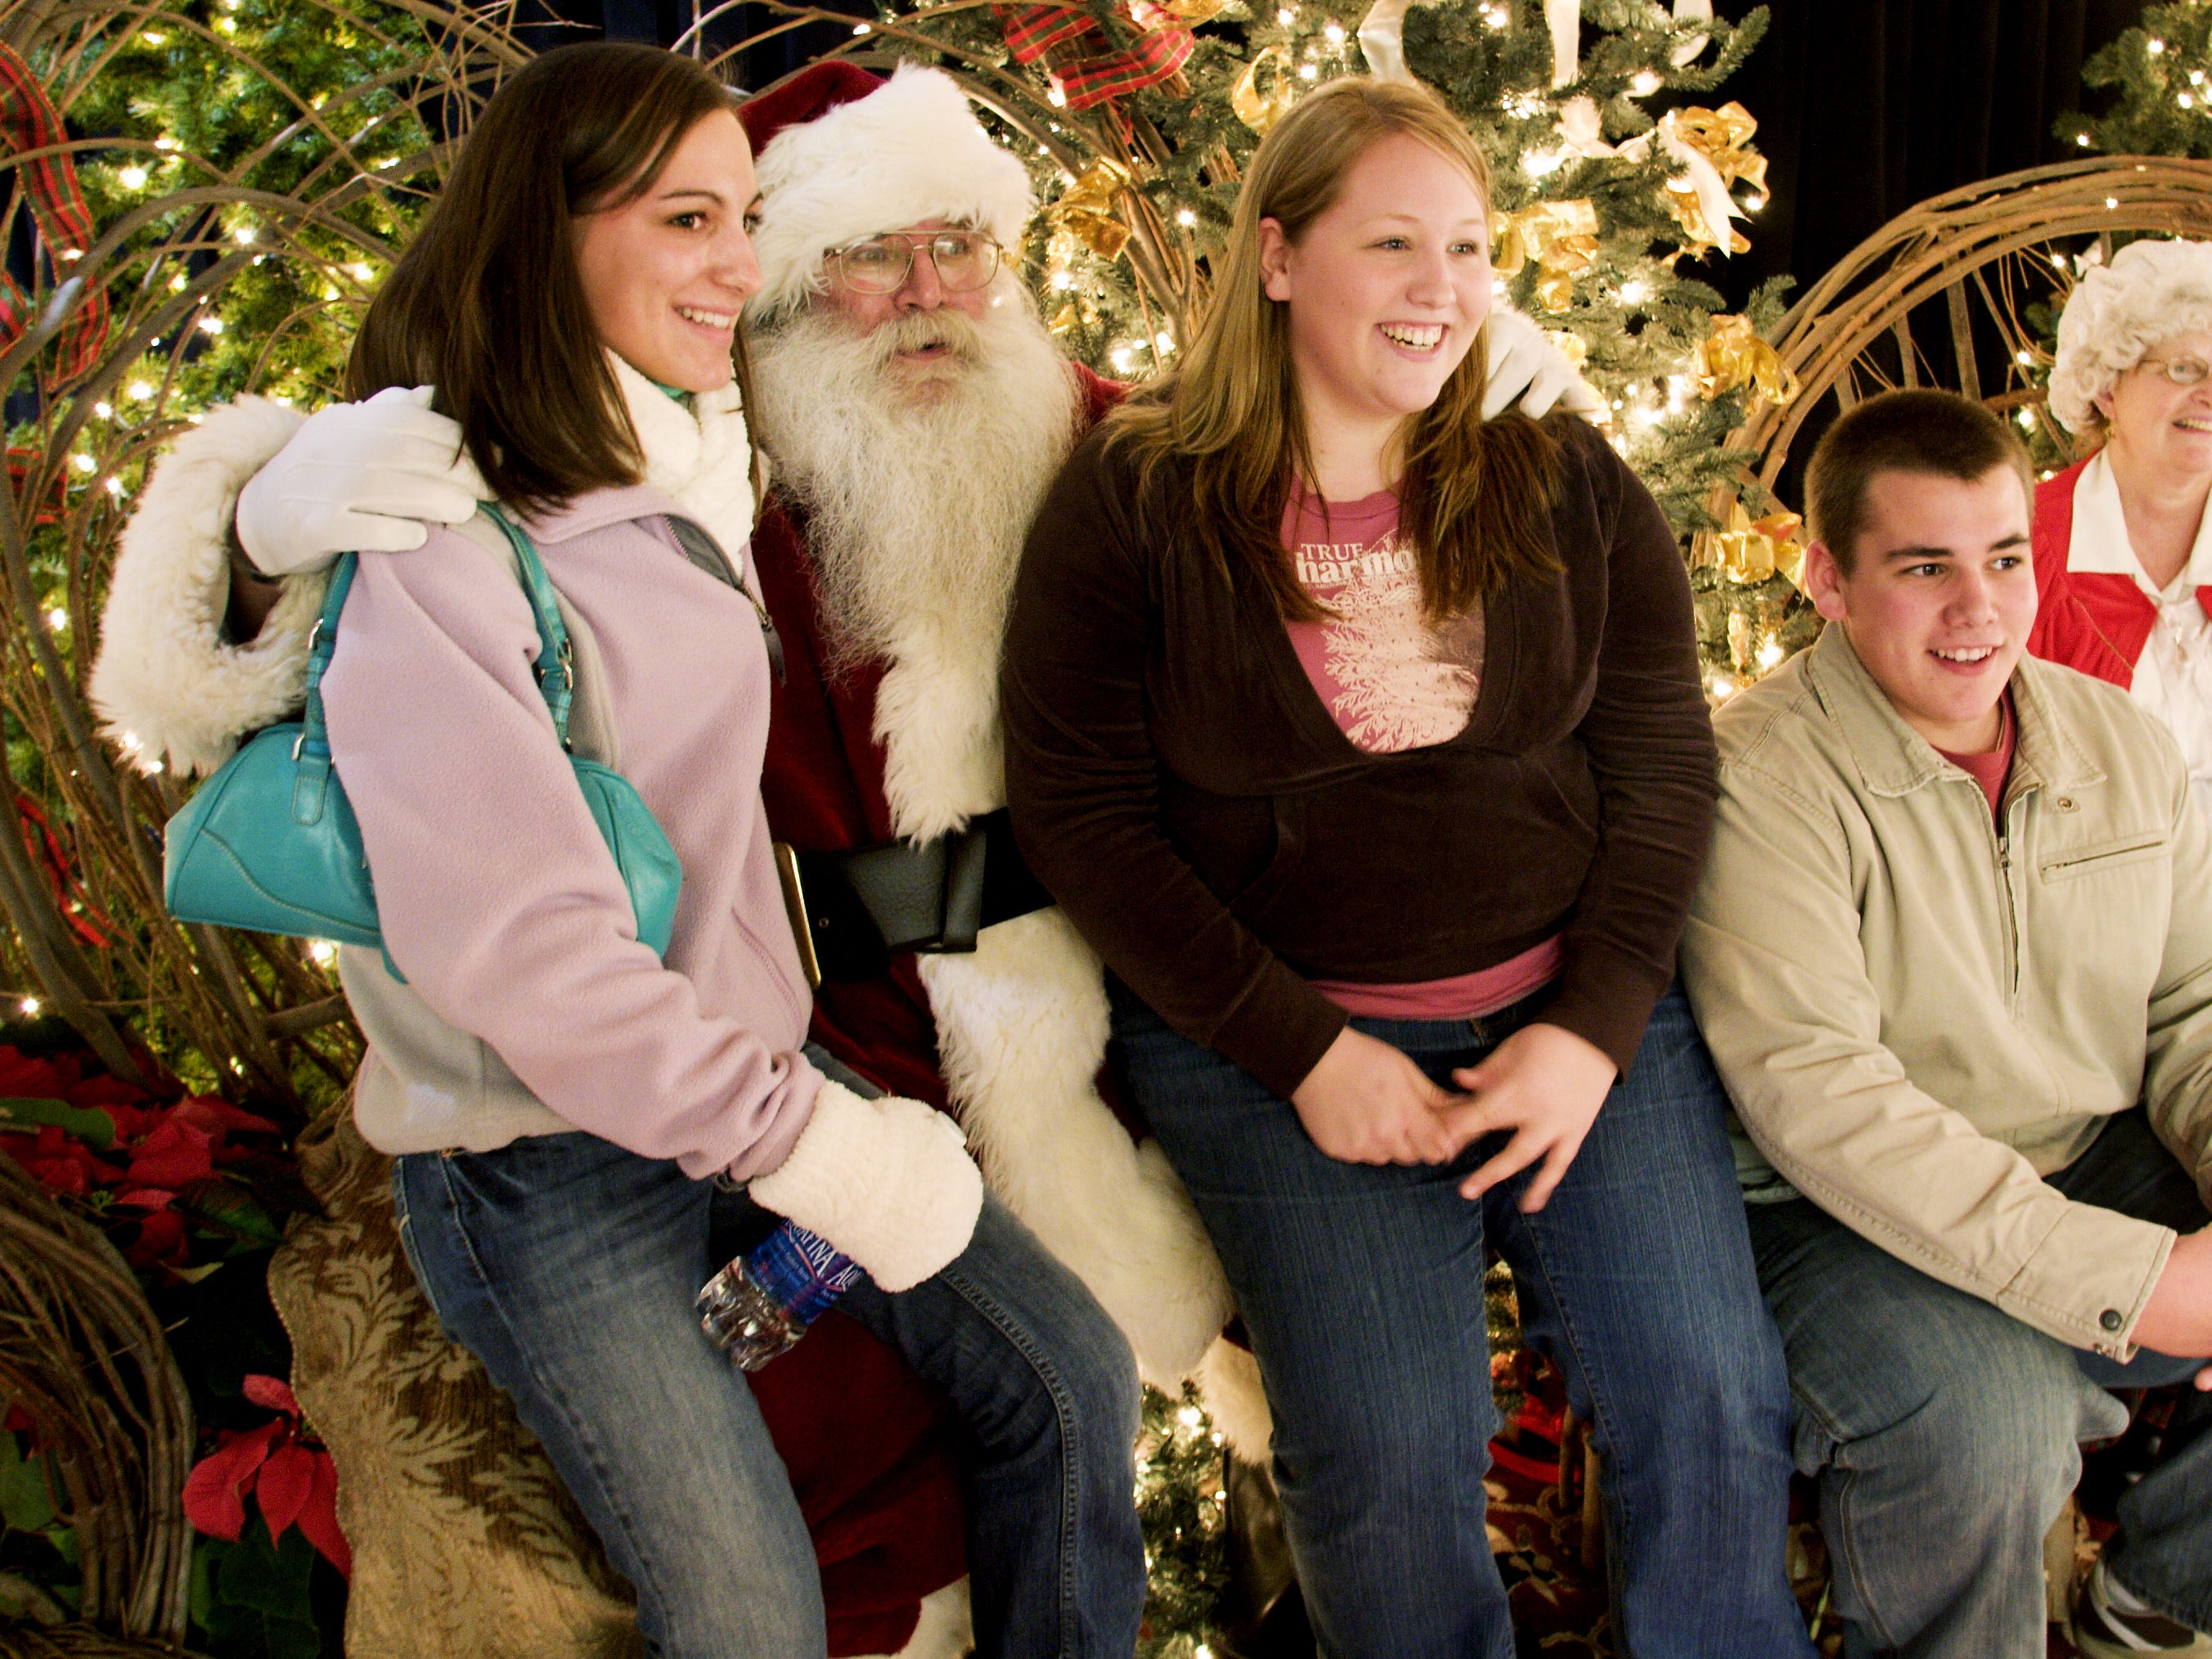 Santa and Mrs. Claus meet teenagers, from left, Olivia Dates, 15, Nikki Kuehner, 19, and Joe Kuehner, 16, all of Corning, at the Corning Museum of Glass in 2006.